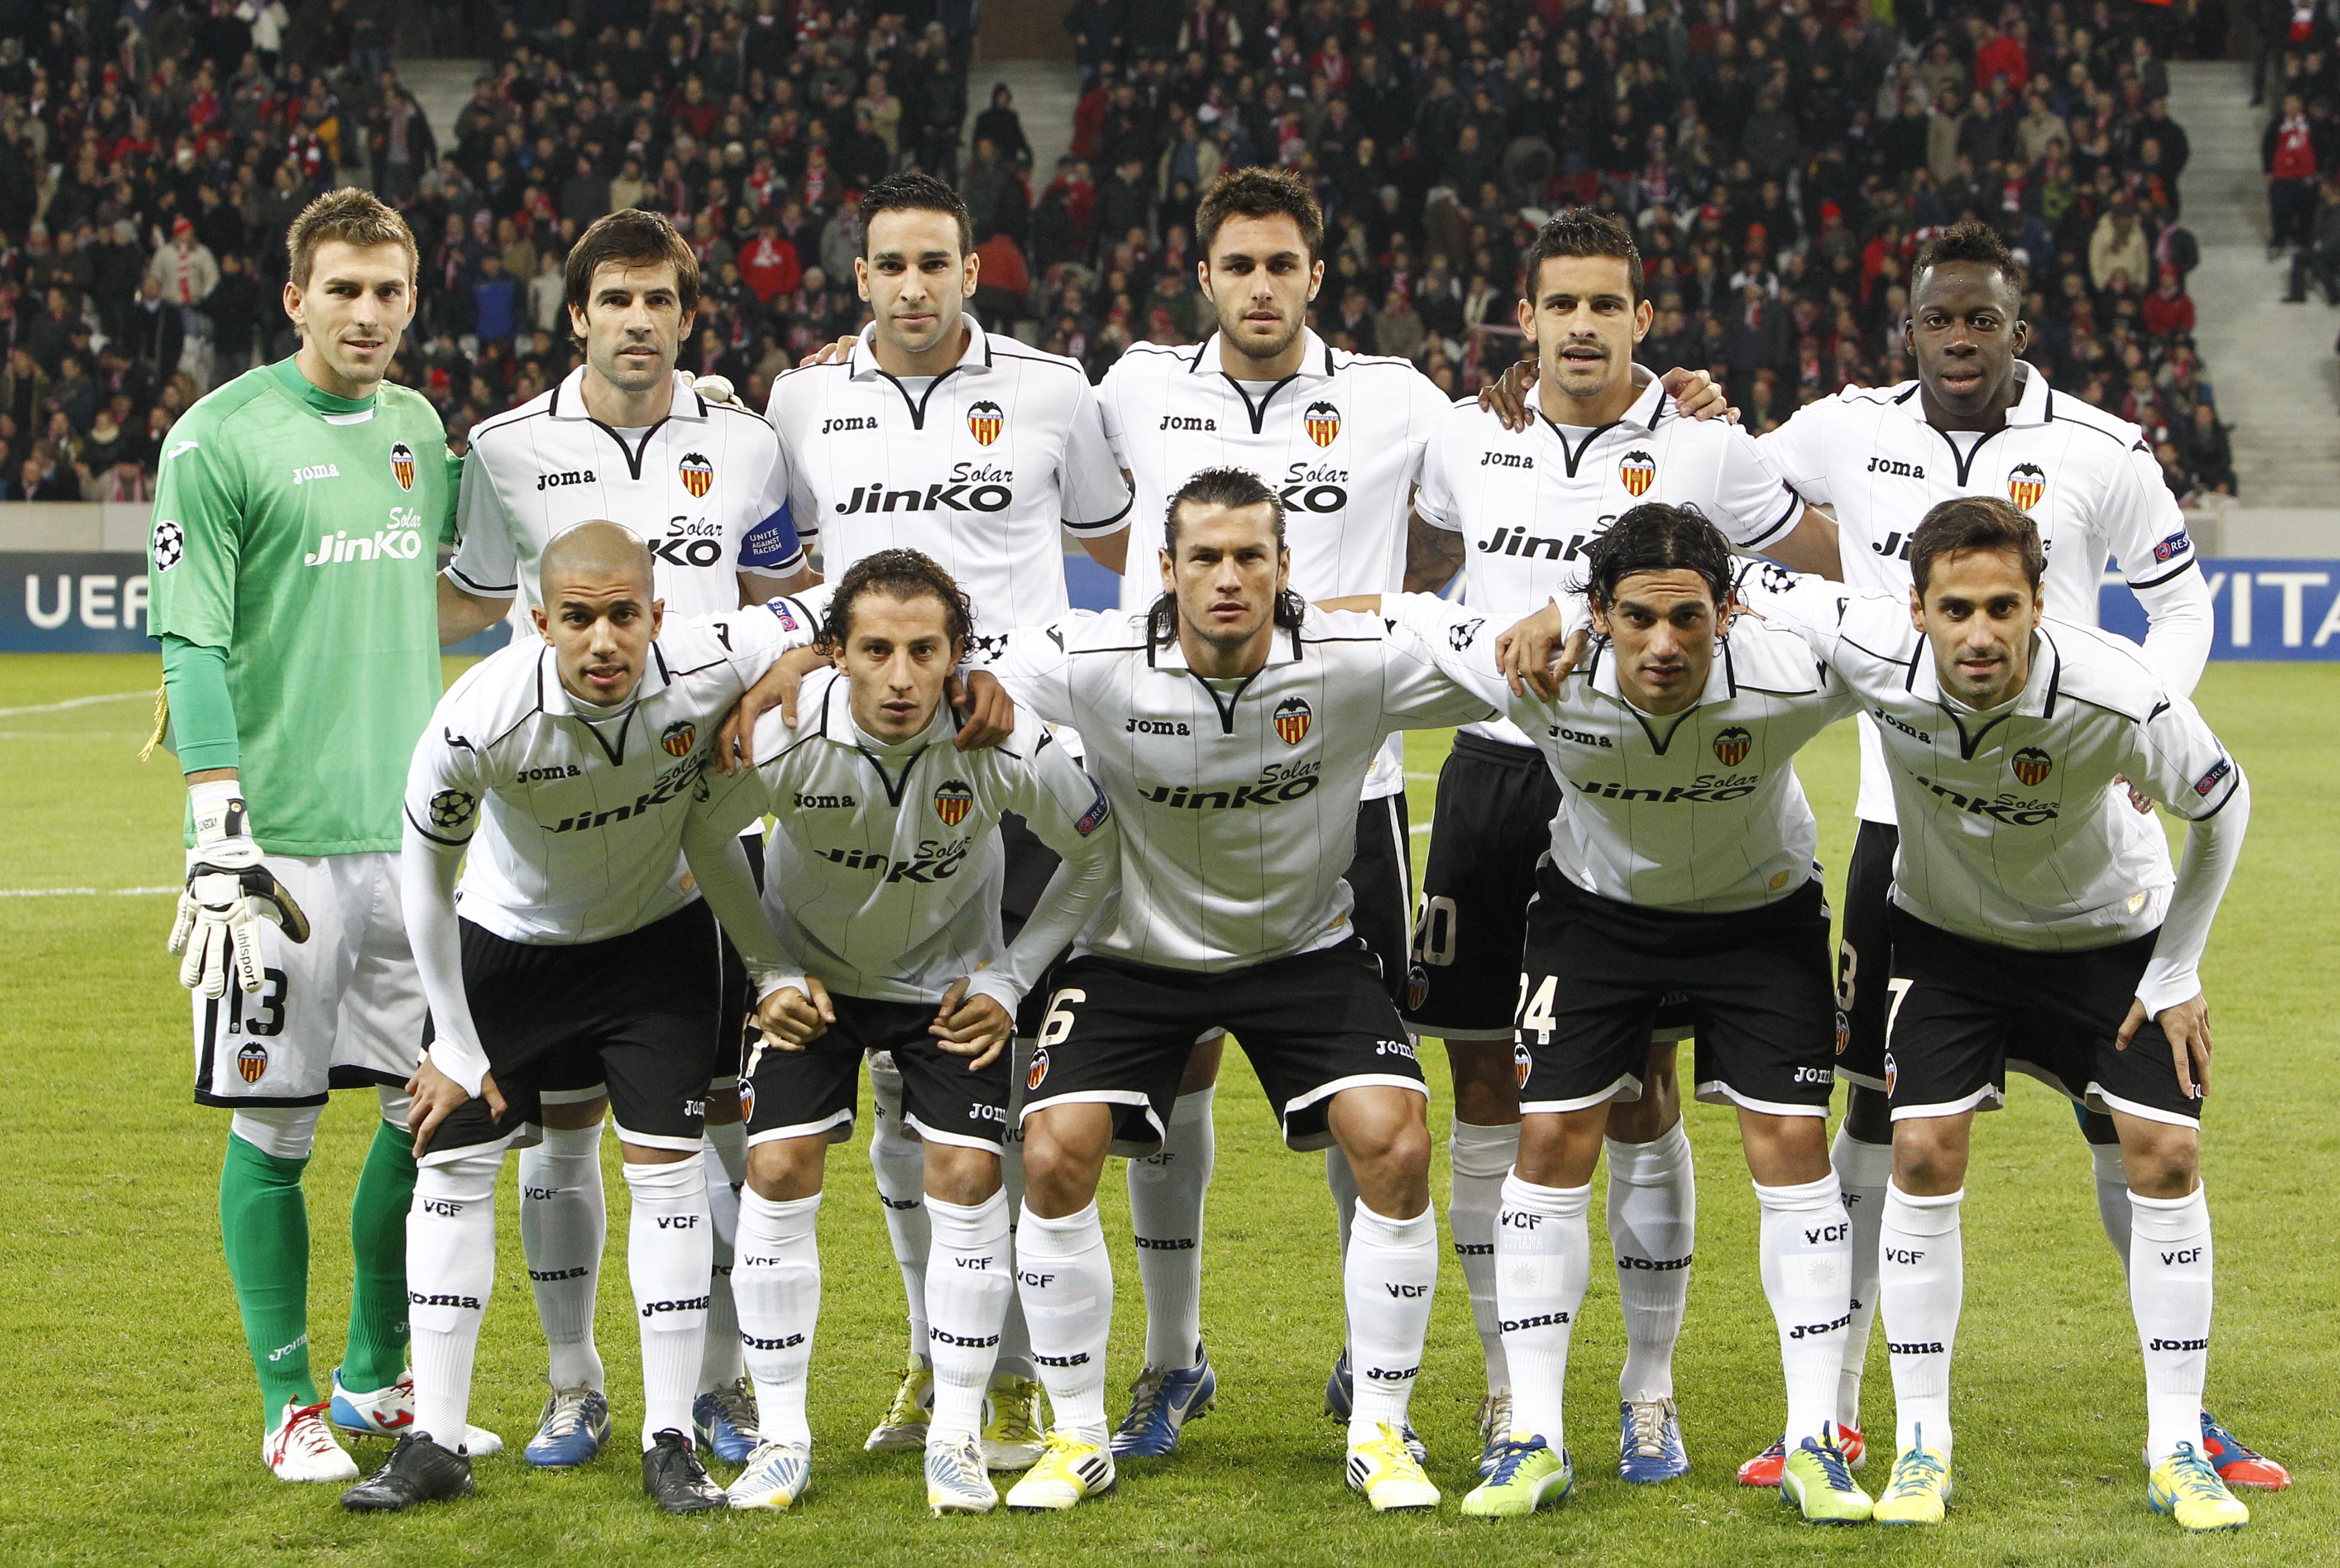 International Champions Cup Preview: Valencia C.F.